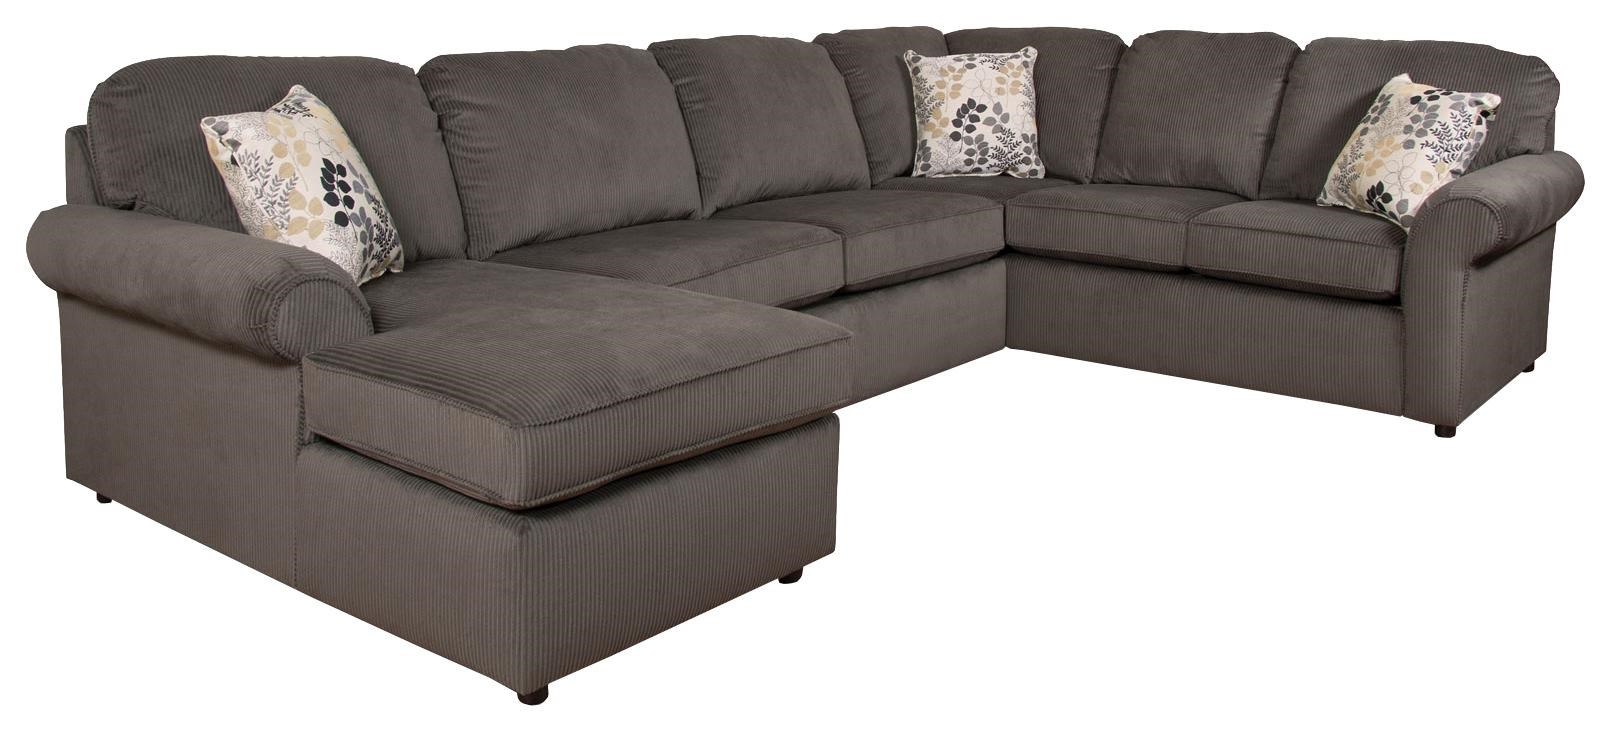 Moondust Sectional With Chaise